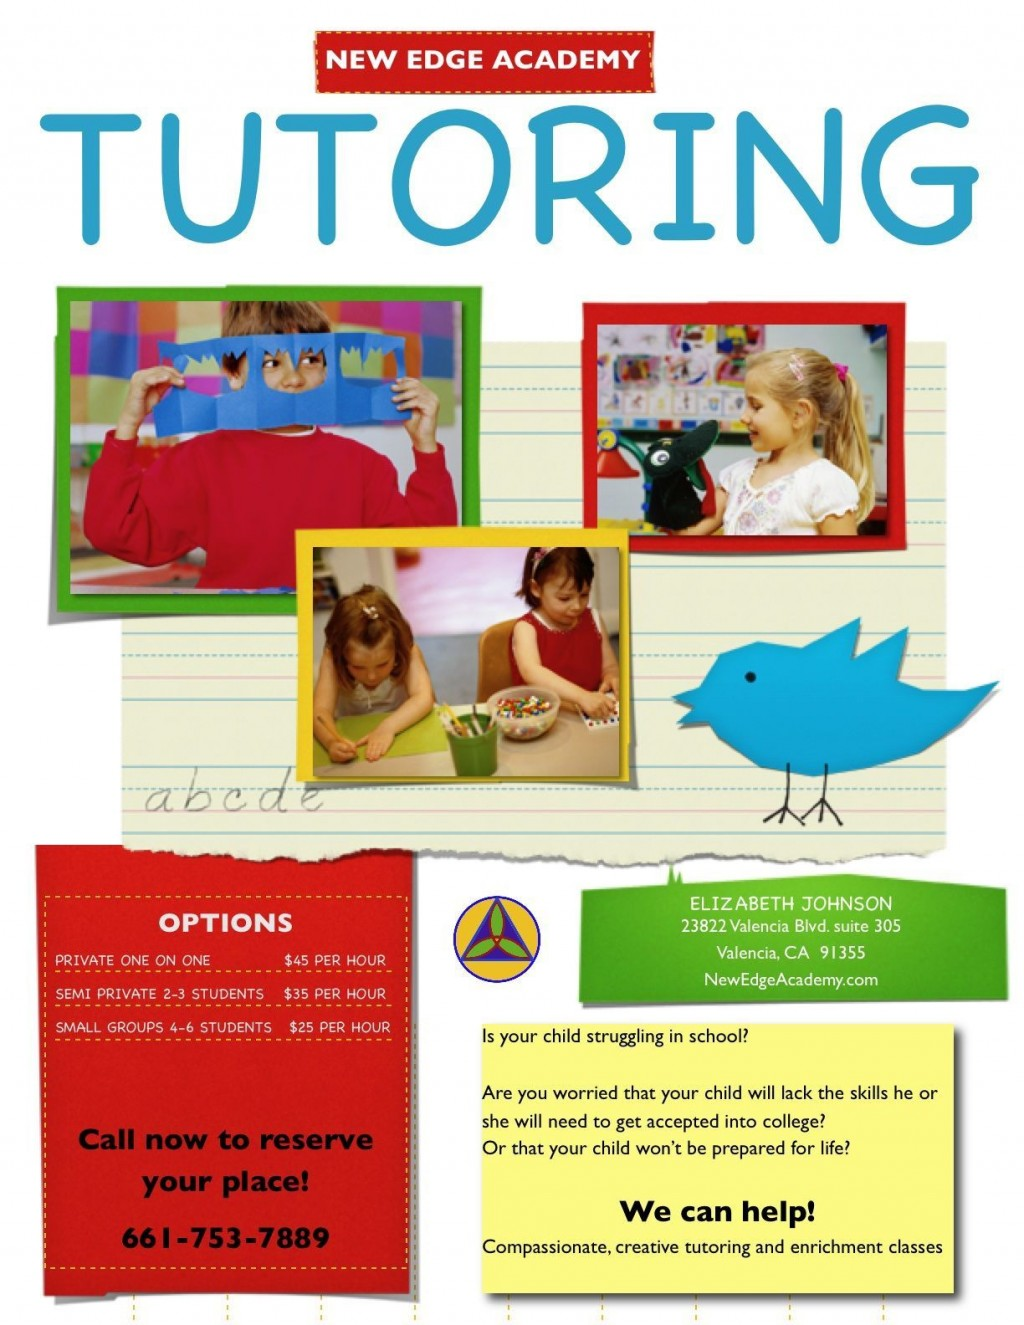 000 Formidable Tutoring Flyer Template Free High Definition  Word MathLarge